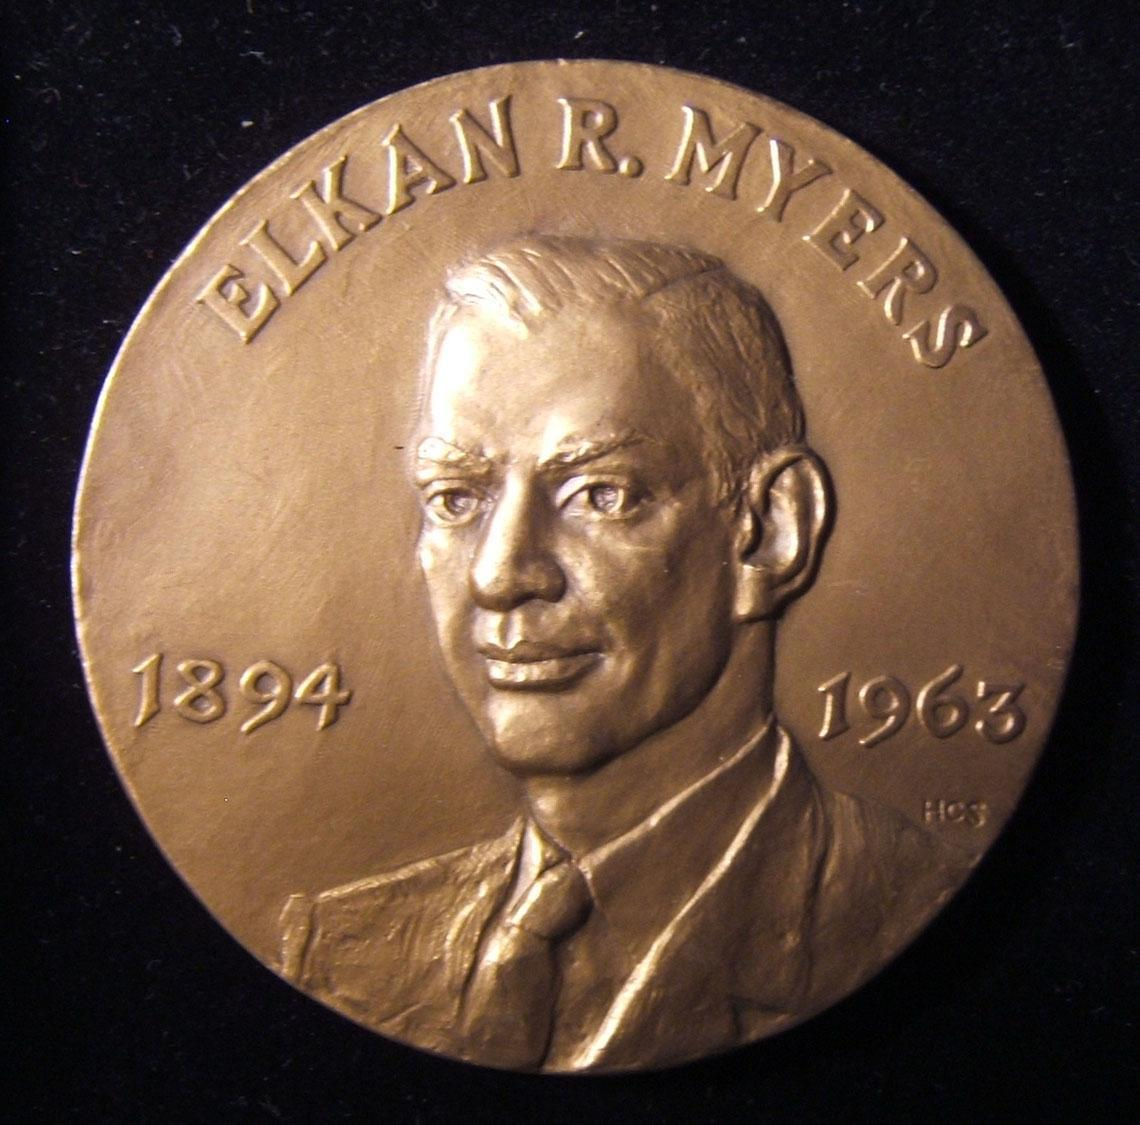 US: Elkan R. Myers memorial award medal, ND; manufactured by the Medallic Art Company, designed by HCS (Hans Carl Schuler, 1912-1999; Forrer listed v8 p.196); size: 76mm; weight: 1